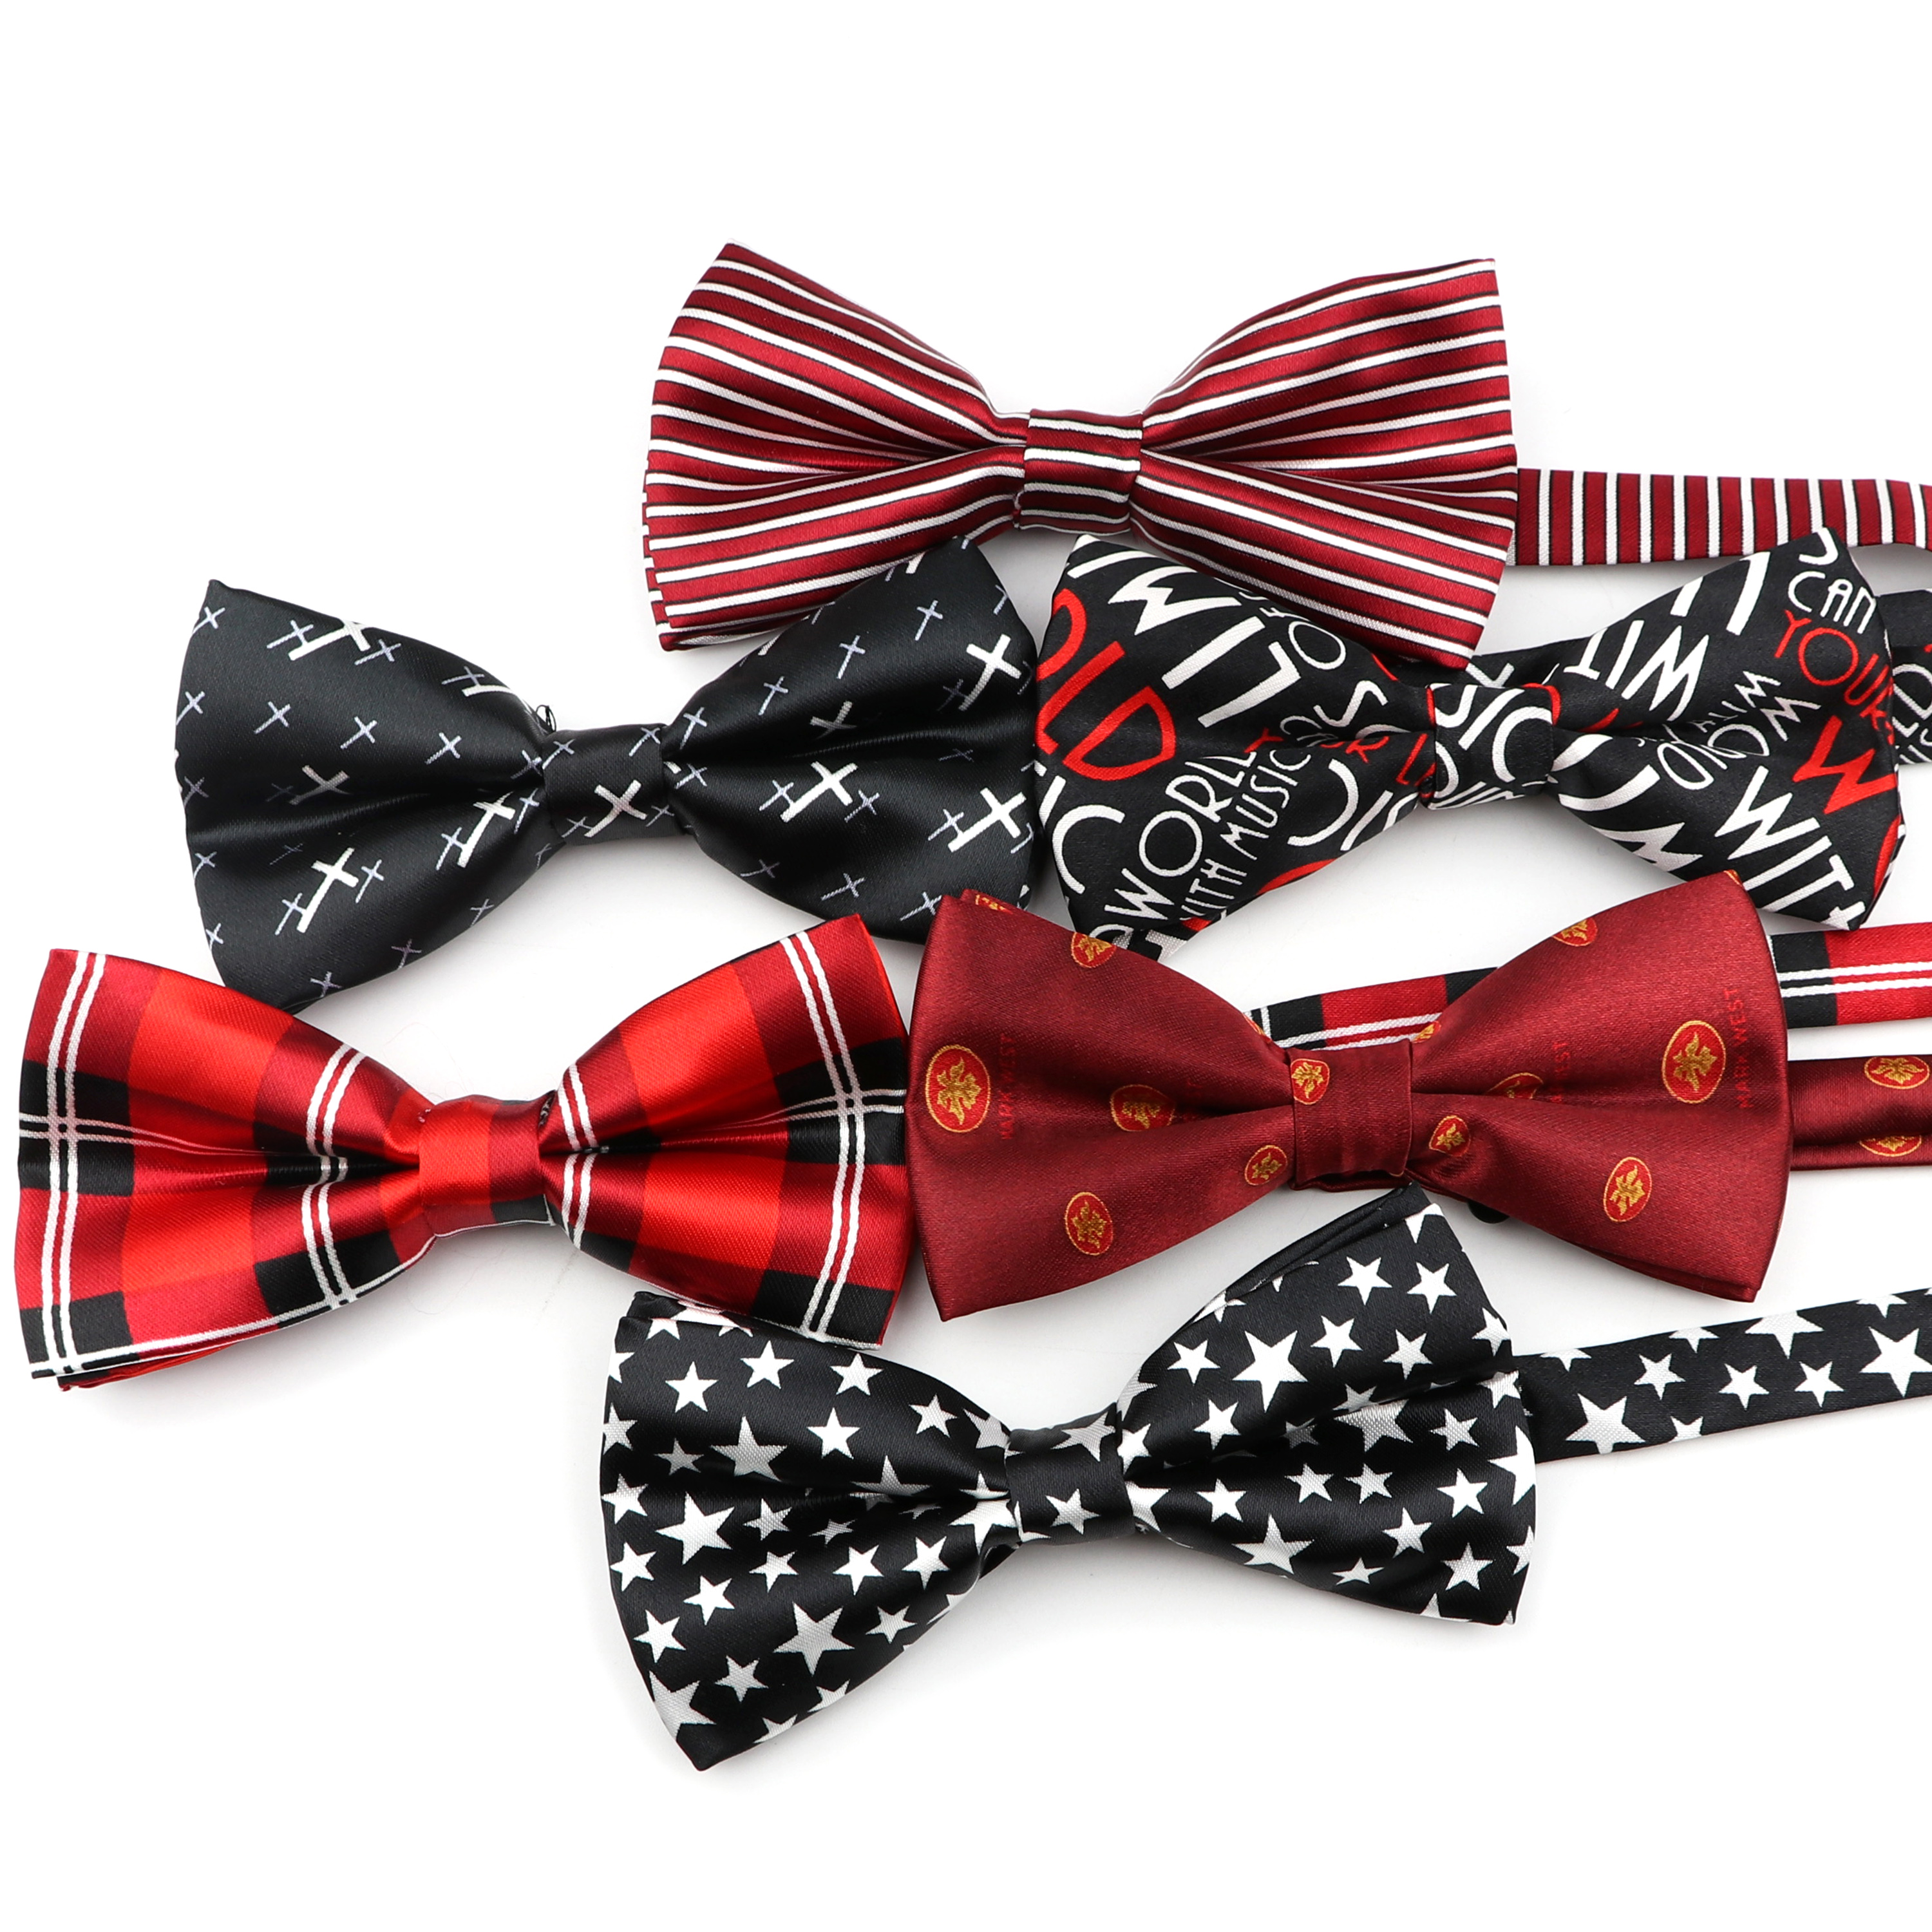 Mens Striped Bow Tie Dot Bowtie Smooth Plaid Necktie Soft Polyester Star Butterfly Festival Striped Ties